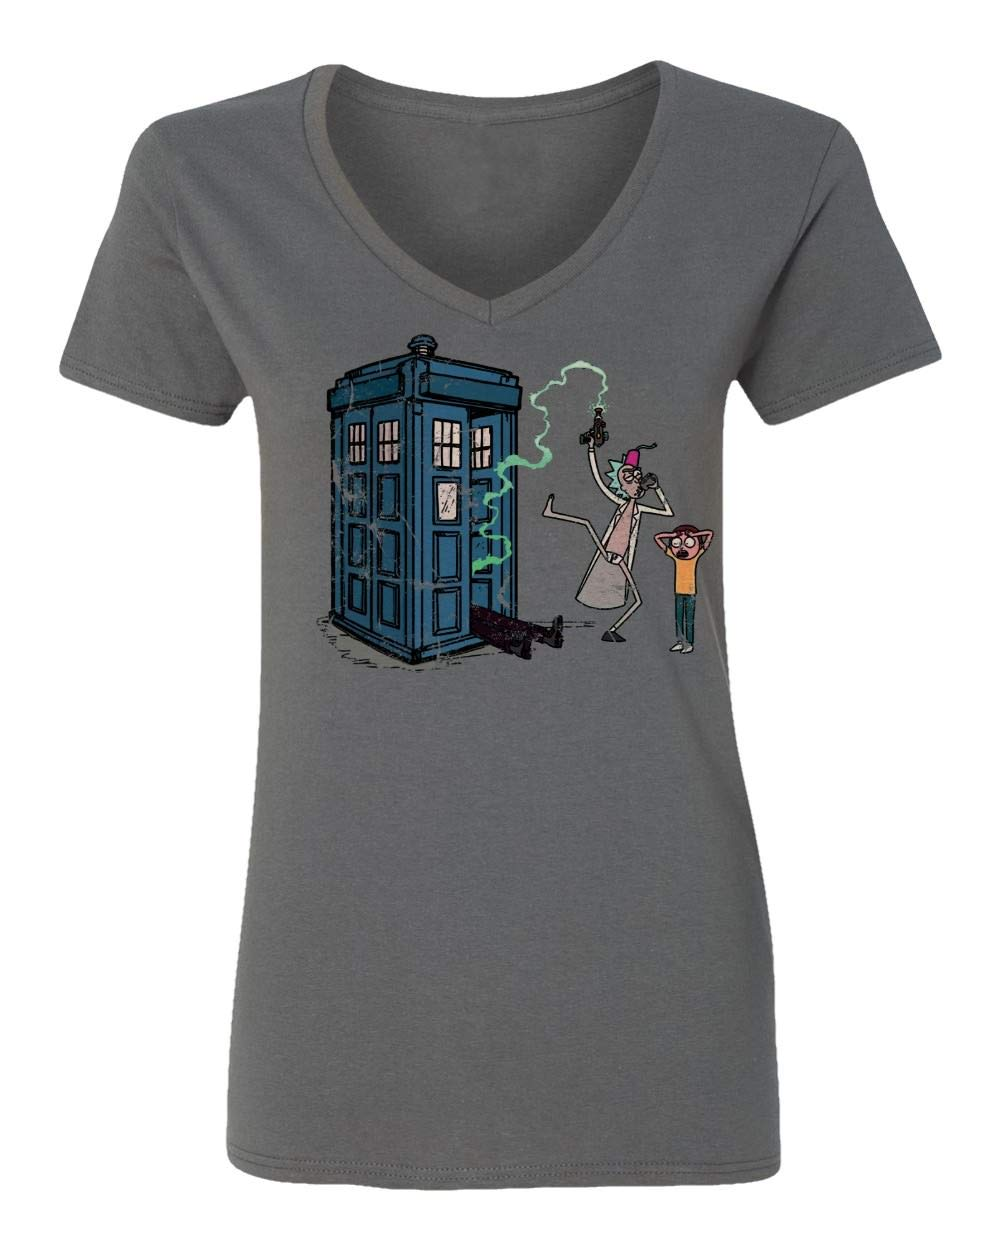 New Graphic Tee Rick Morty Shirt Doctor Who Rick Morty Graphic Vneck T Shirt 2952